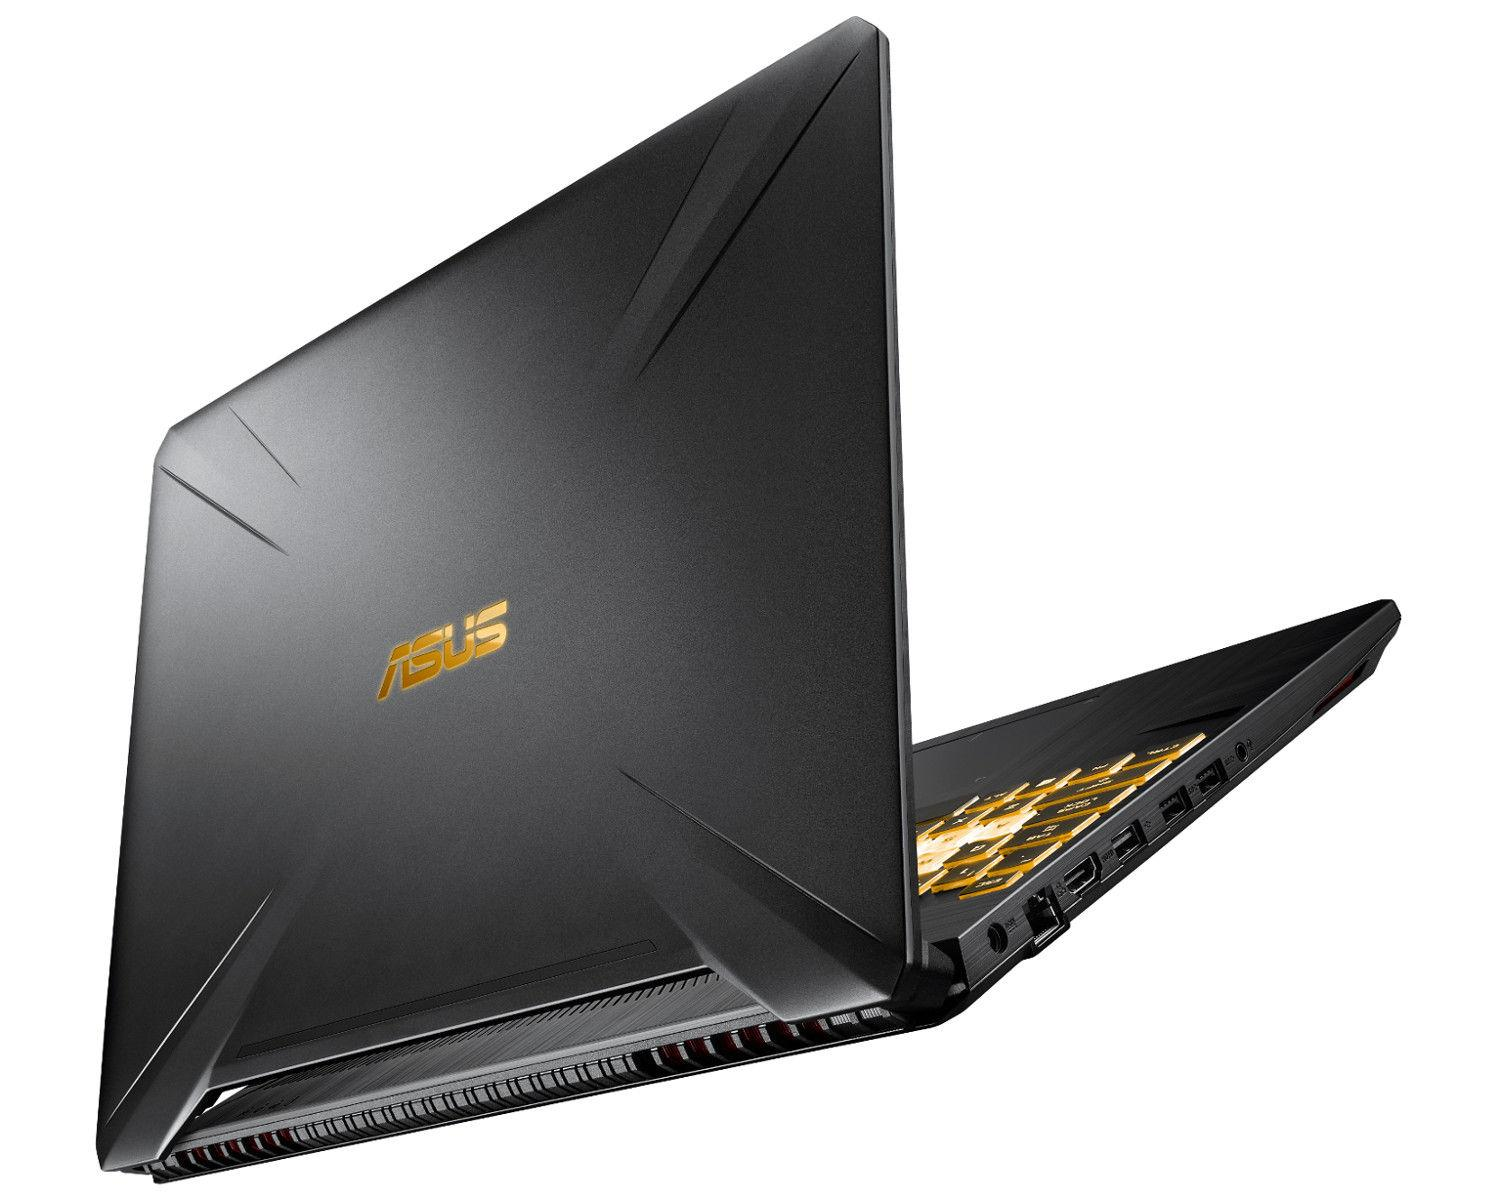 Ordinateur portable Asus TUF 565GE-AL352 Noir/Gold - IPS 120Hz, GTX 1050 Ti, Sans Windows - photo 4